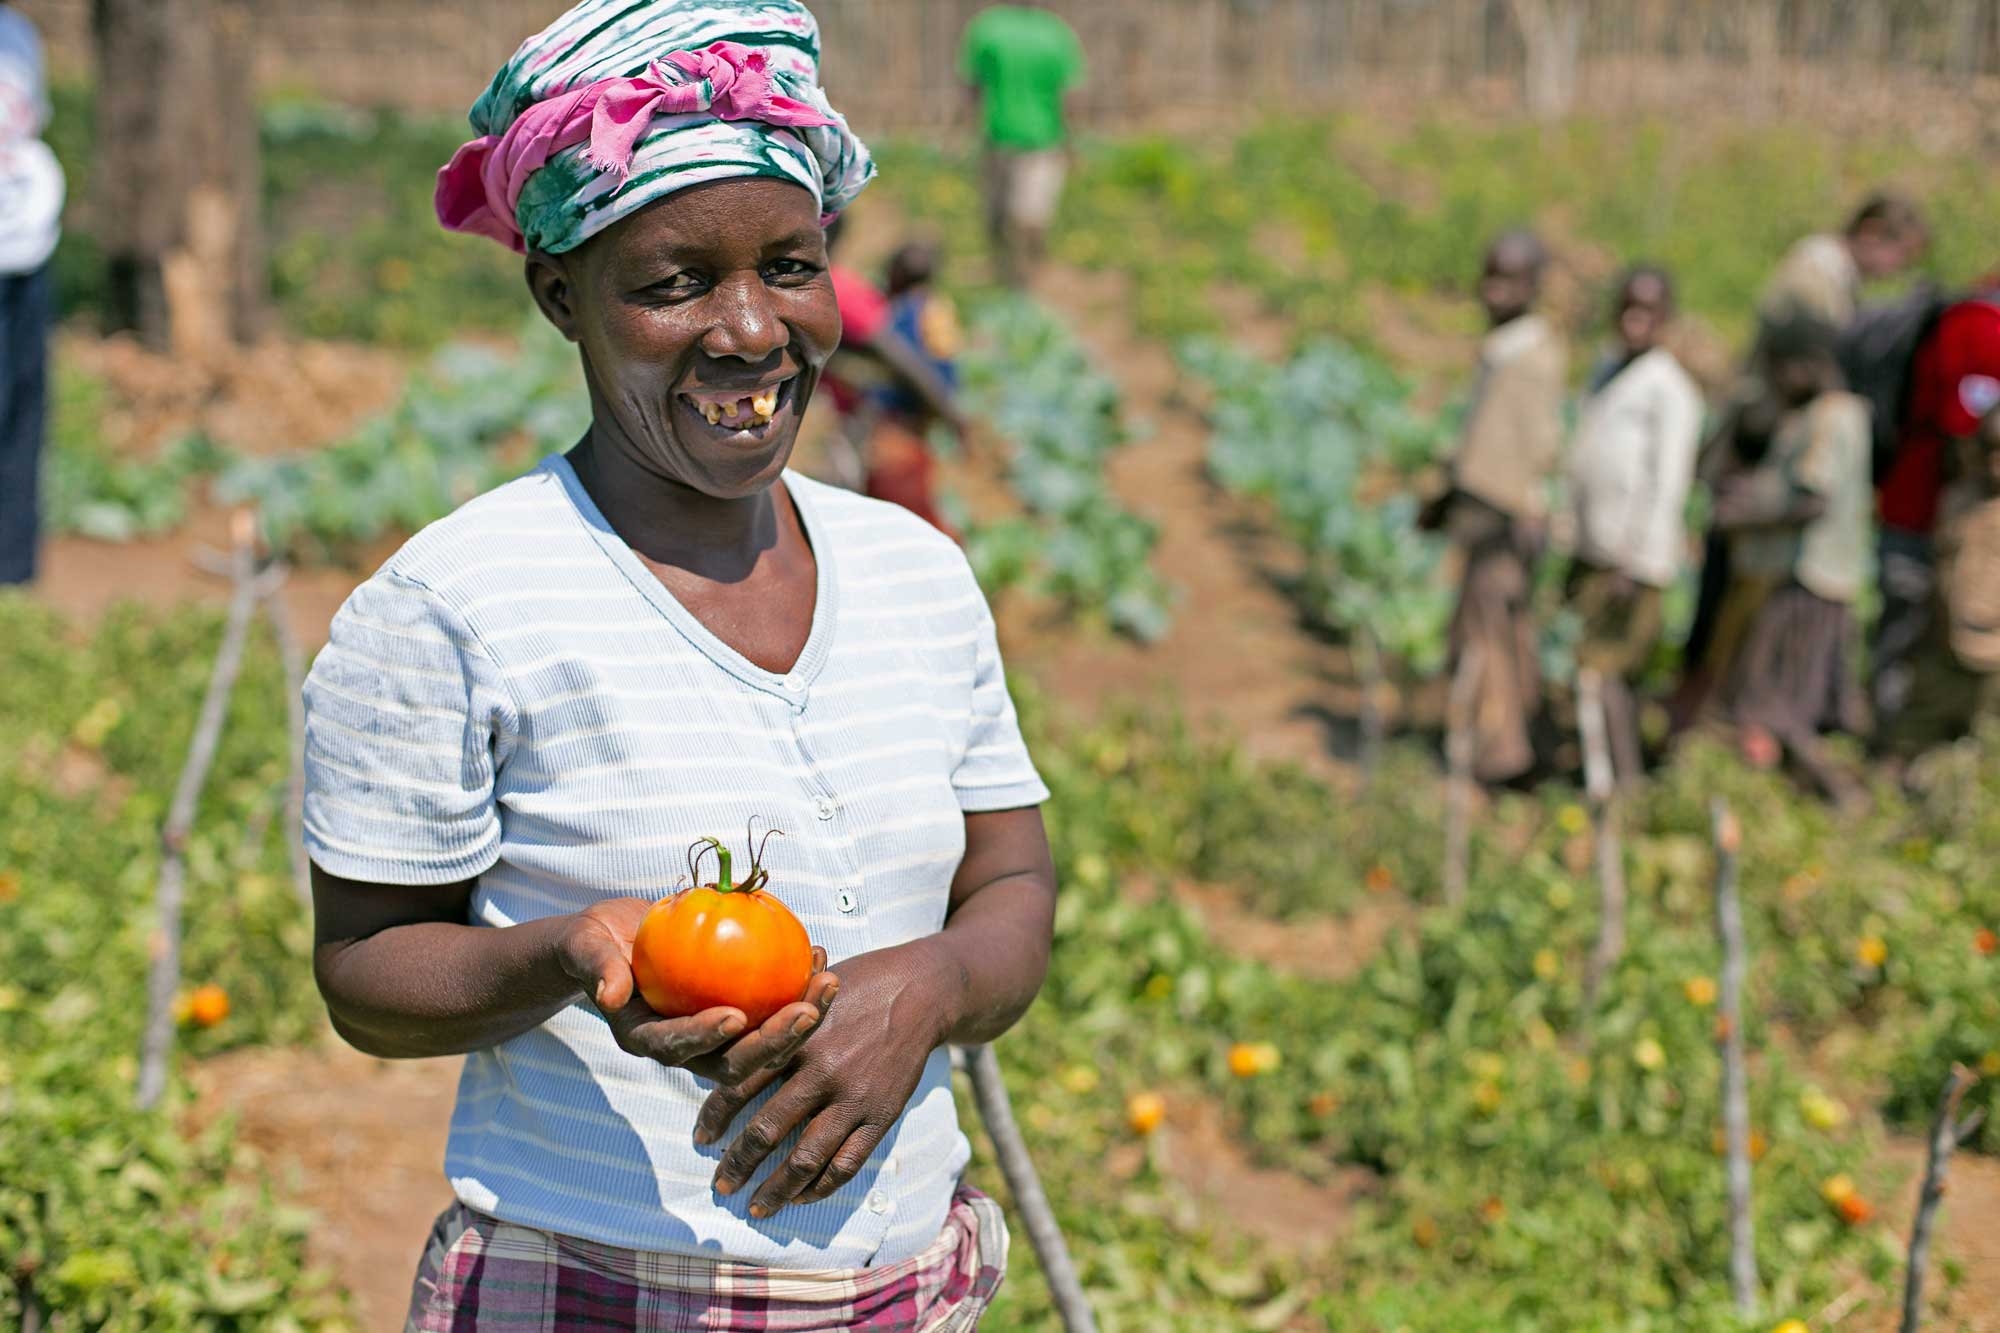 Tino Gente stands in her field smiling and holding a ripe tomato.